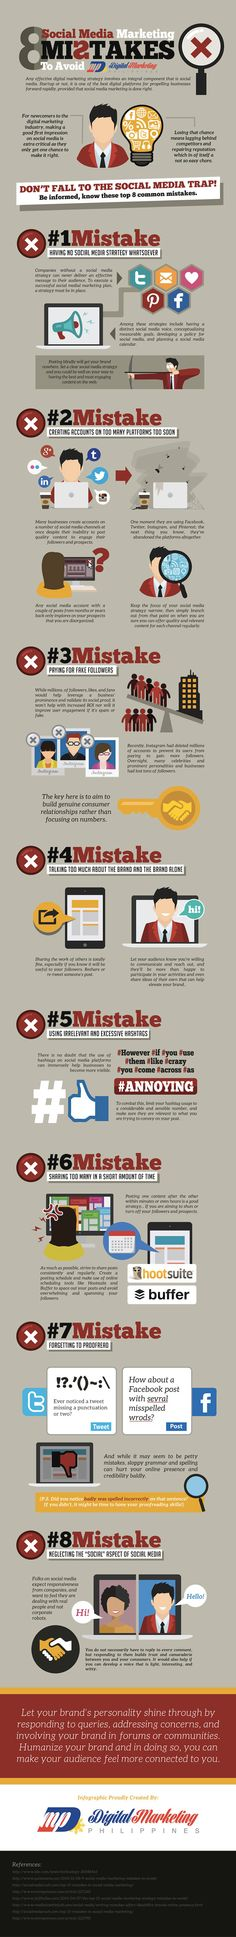 8 Social Media Marketing Mistakes to Avoid by Digital Marketing Philippines